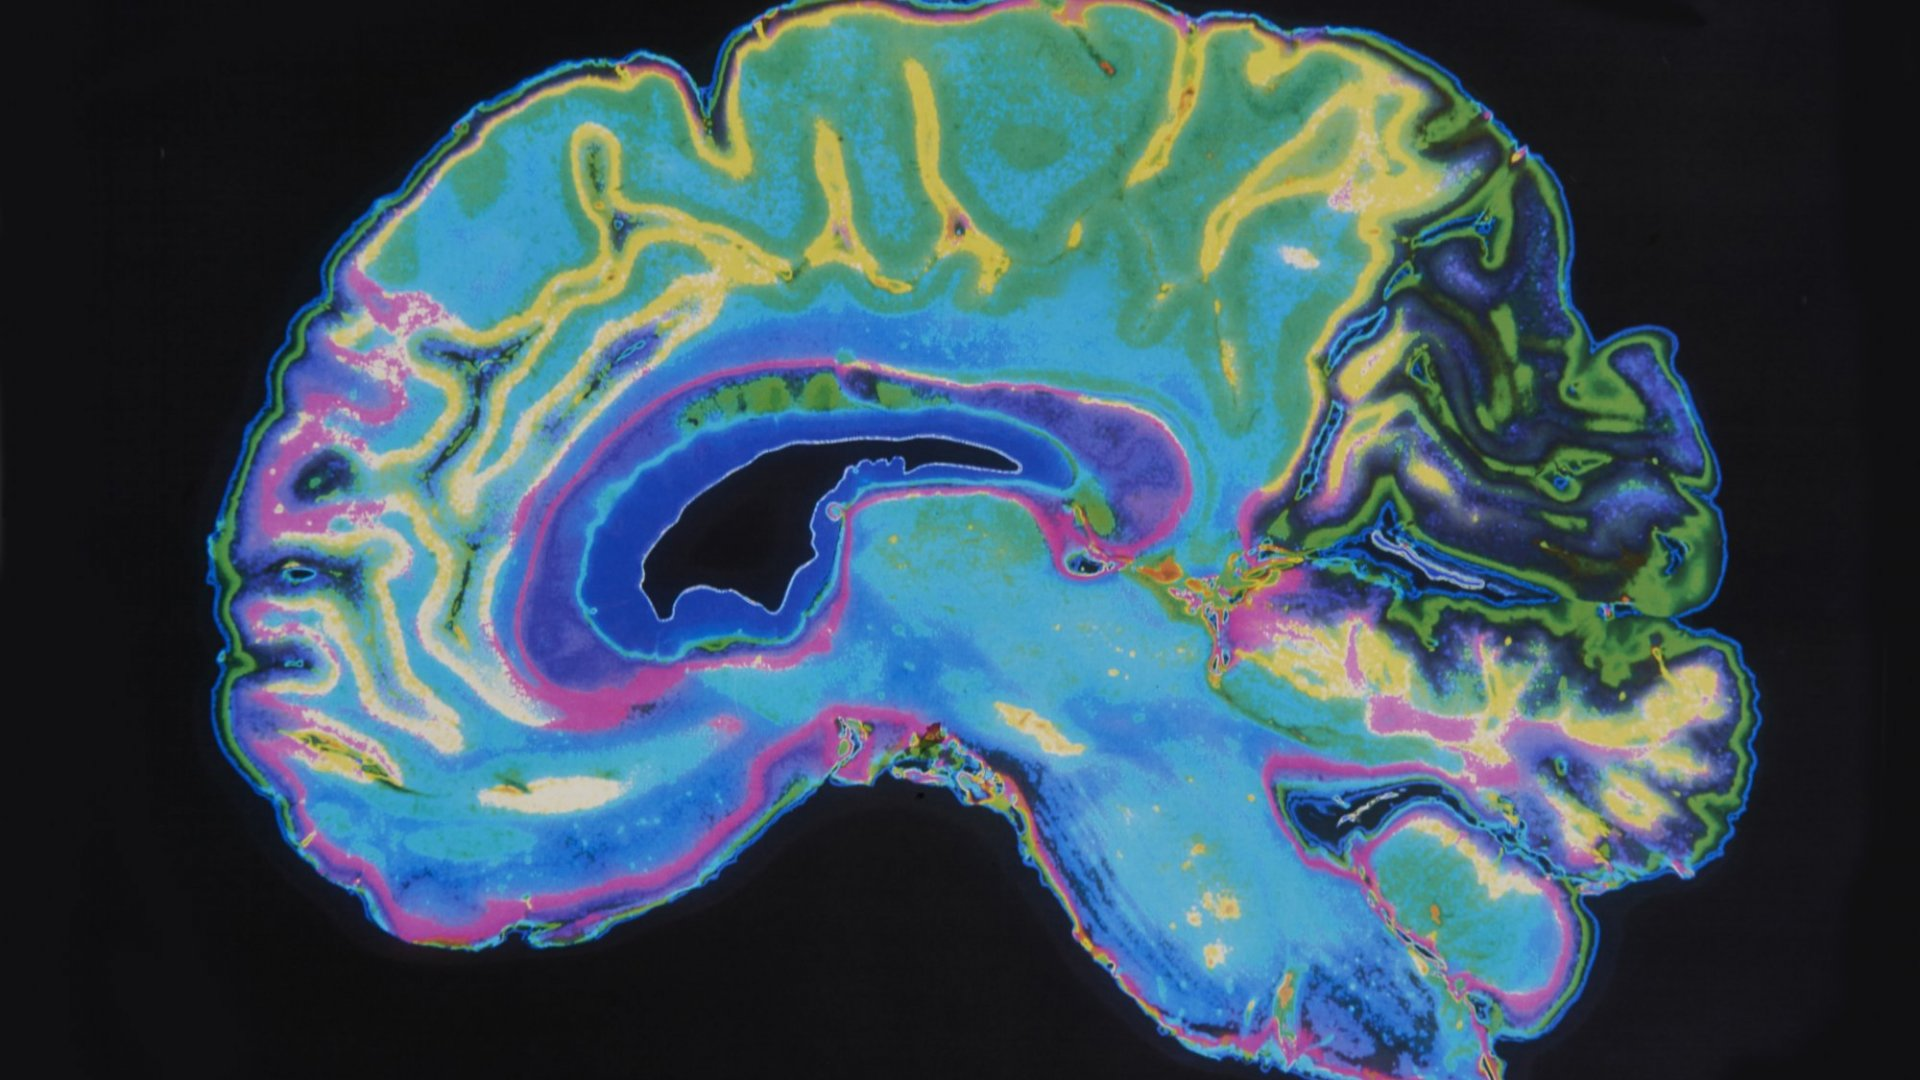 The 1 Sure Way to Get People to Like You, According to Brain Scans